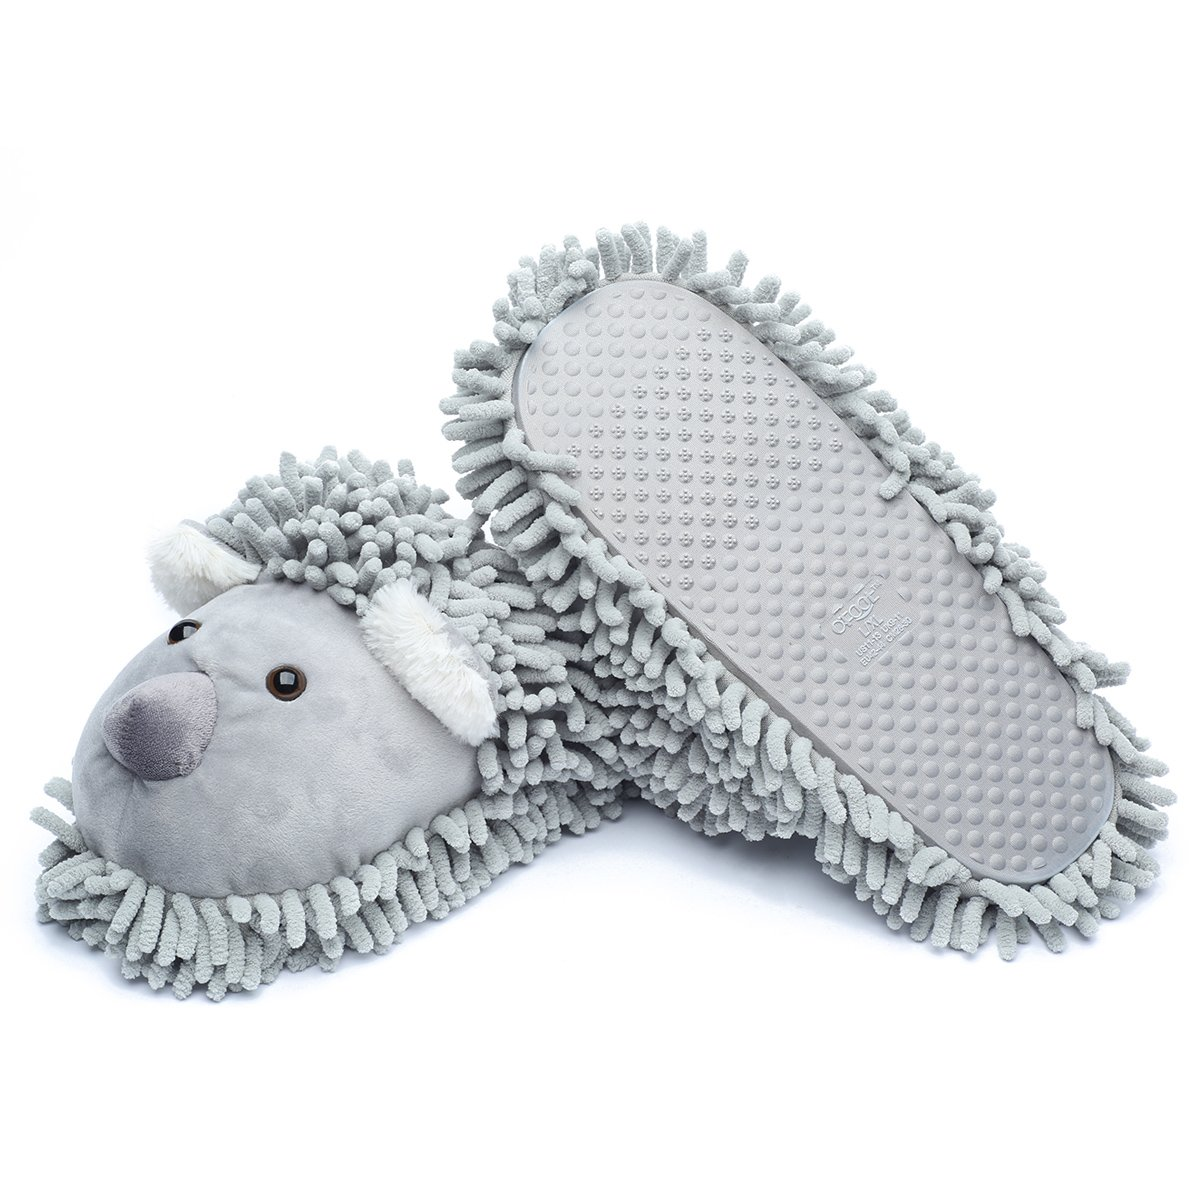 Ofoot Winter Warm Plush Anti-slip Indoor Animal Slippers for Women and Men (M/L 8-10 B(M) US, Grey(Koala)) by Ofoot (Image #7)